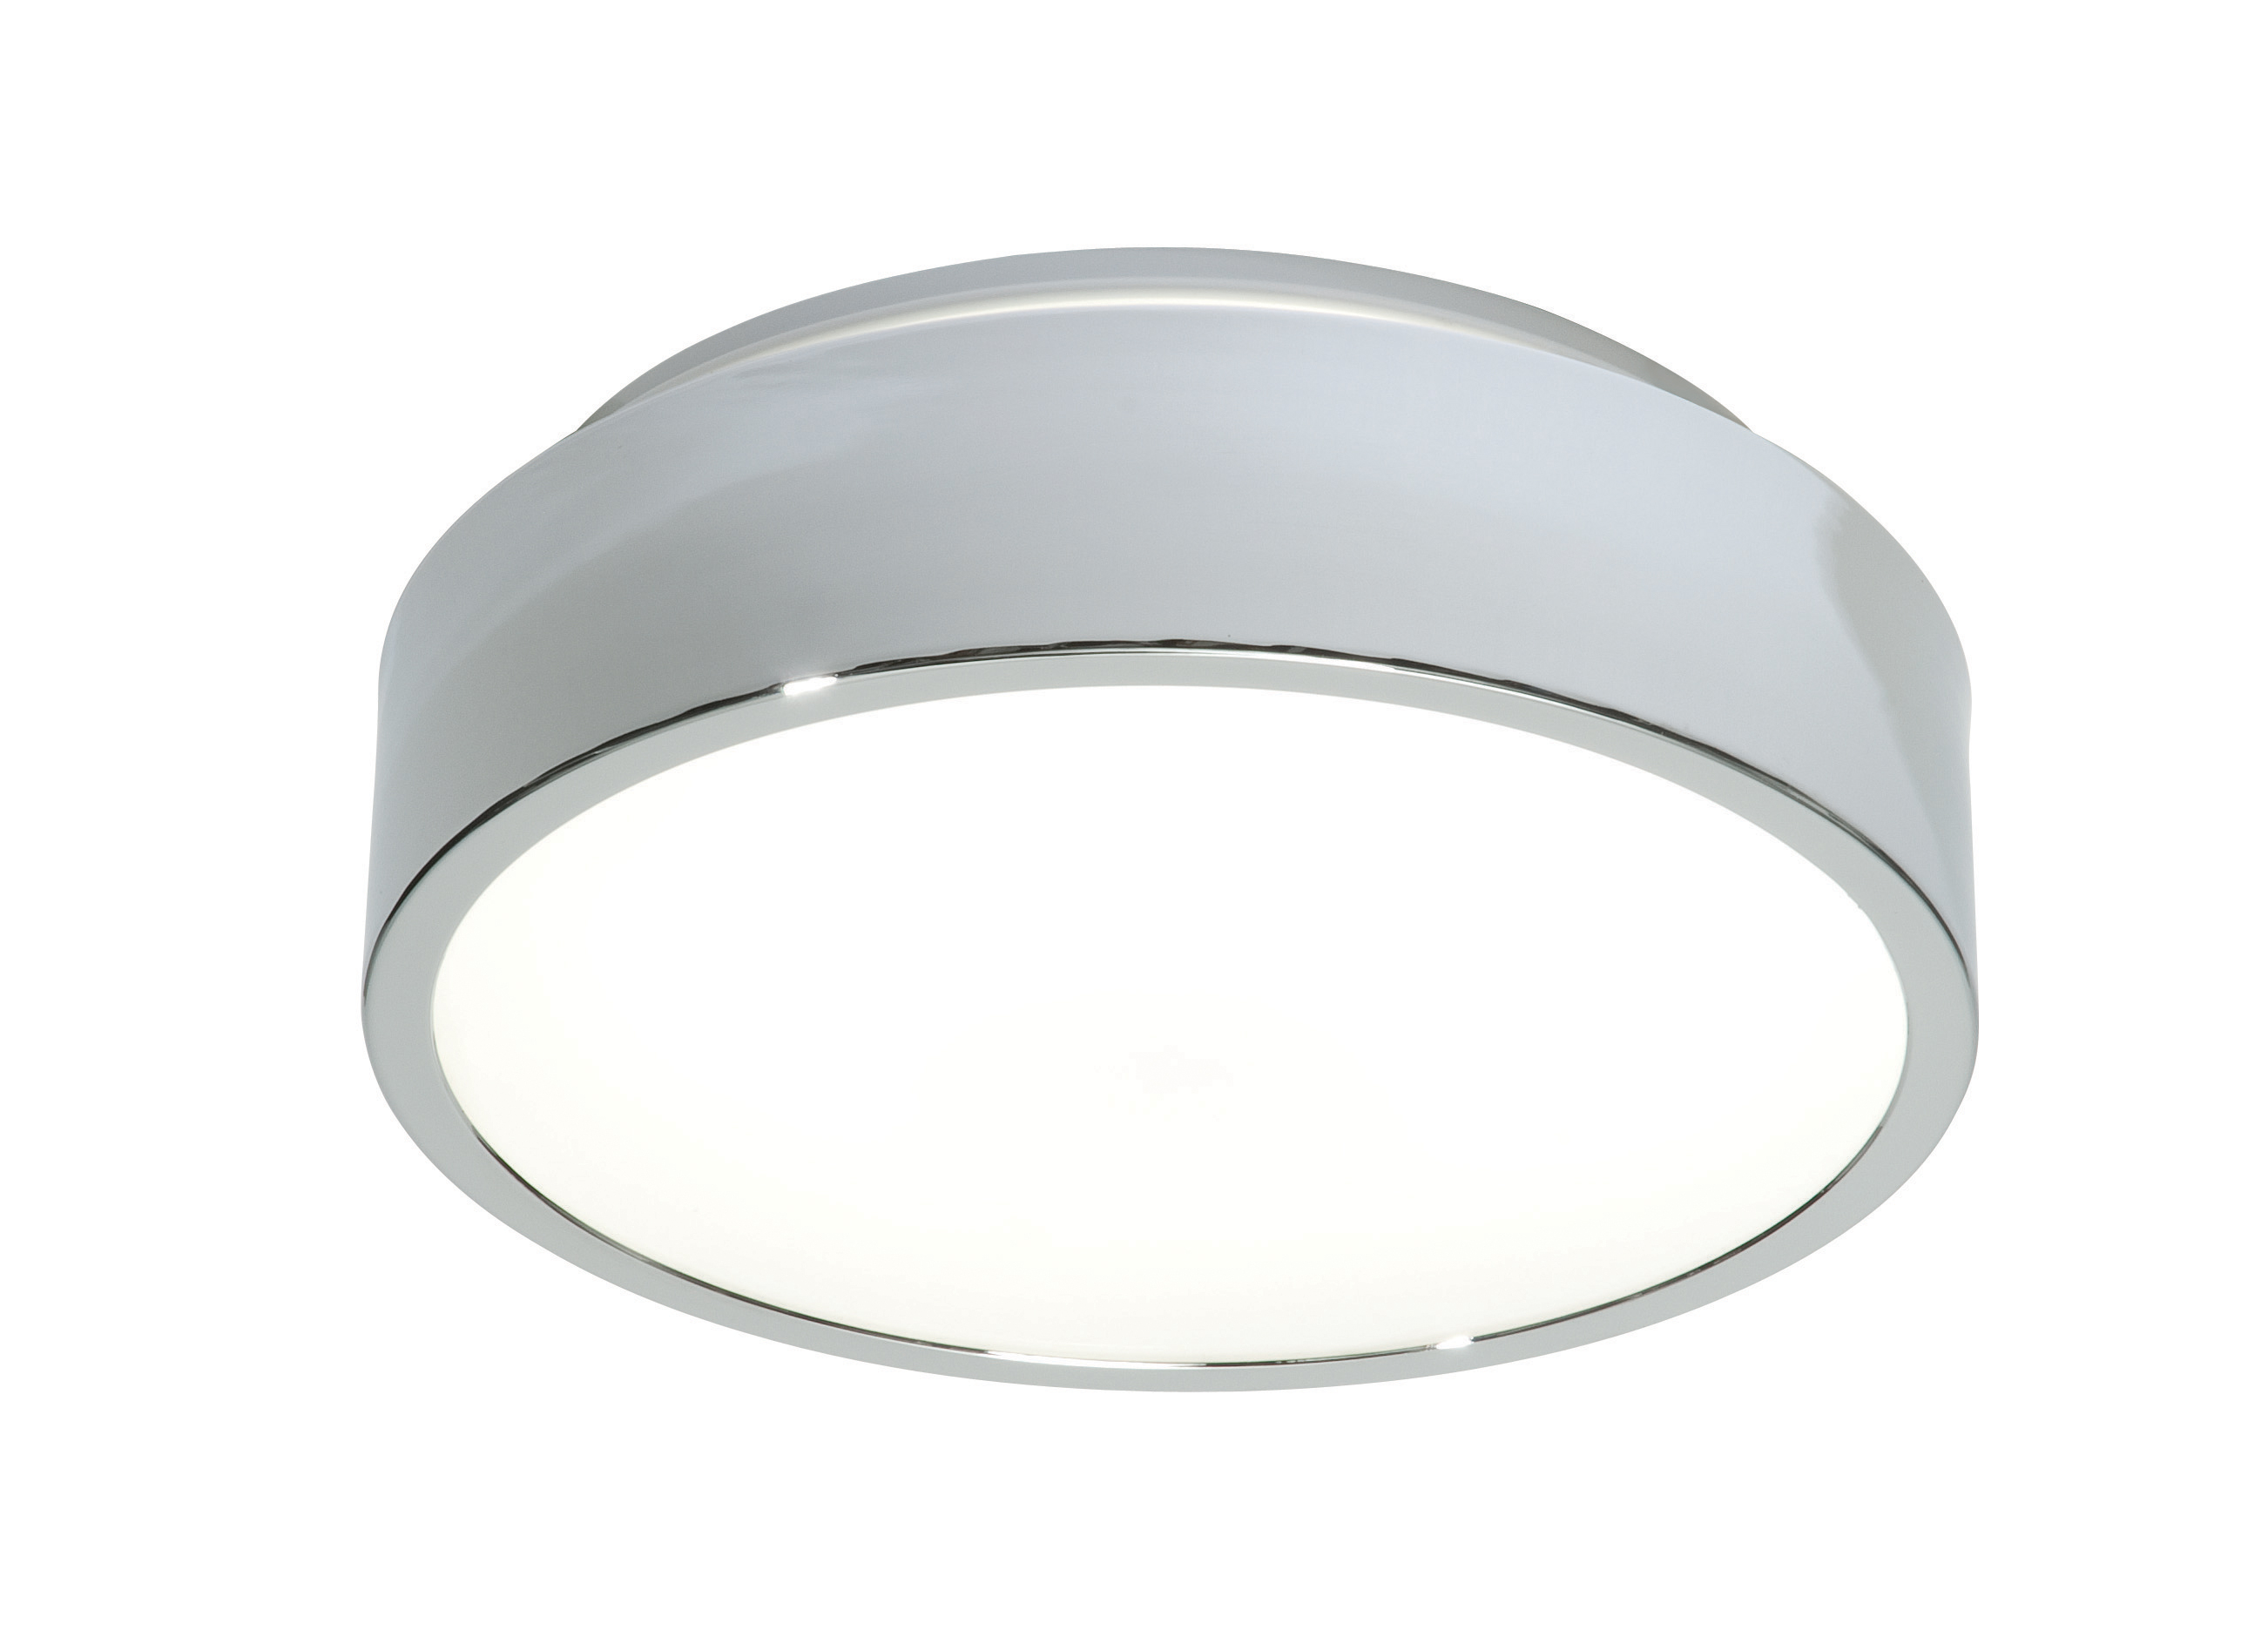 Saxby Lipco Small 31950 Round ceiling light 1x 16W GR10q ...